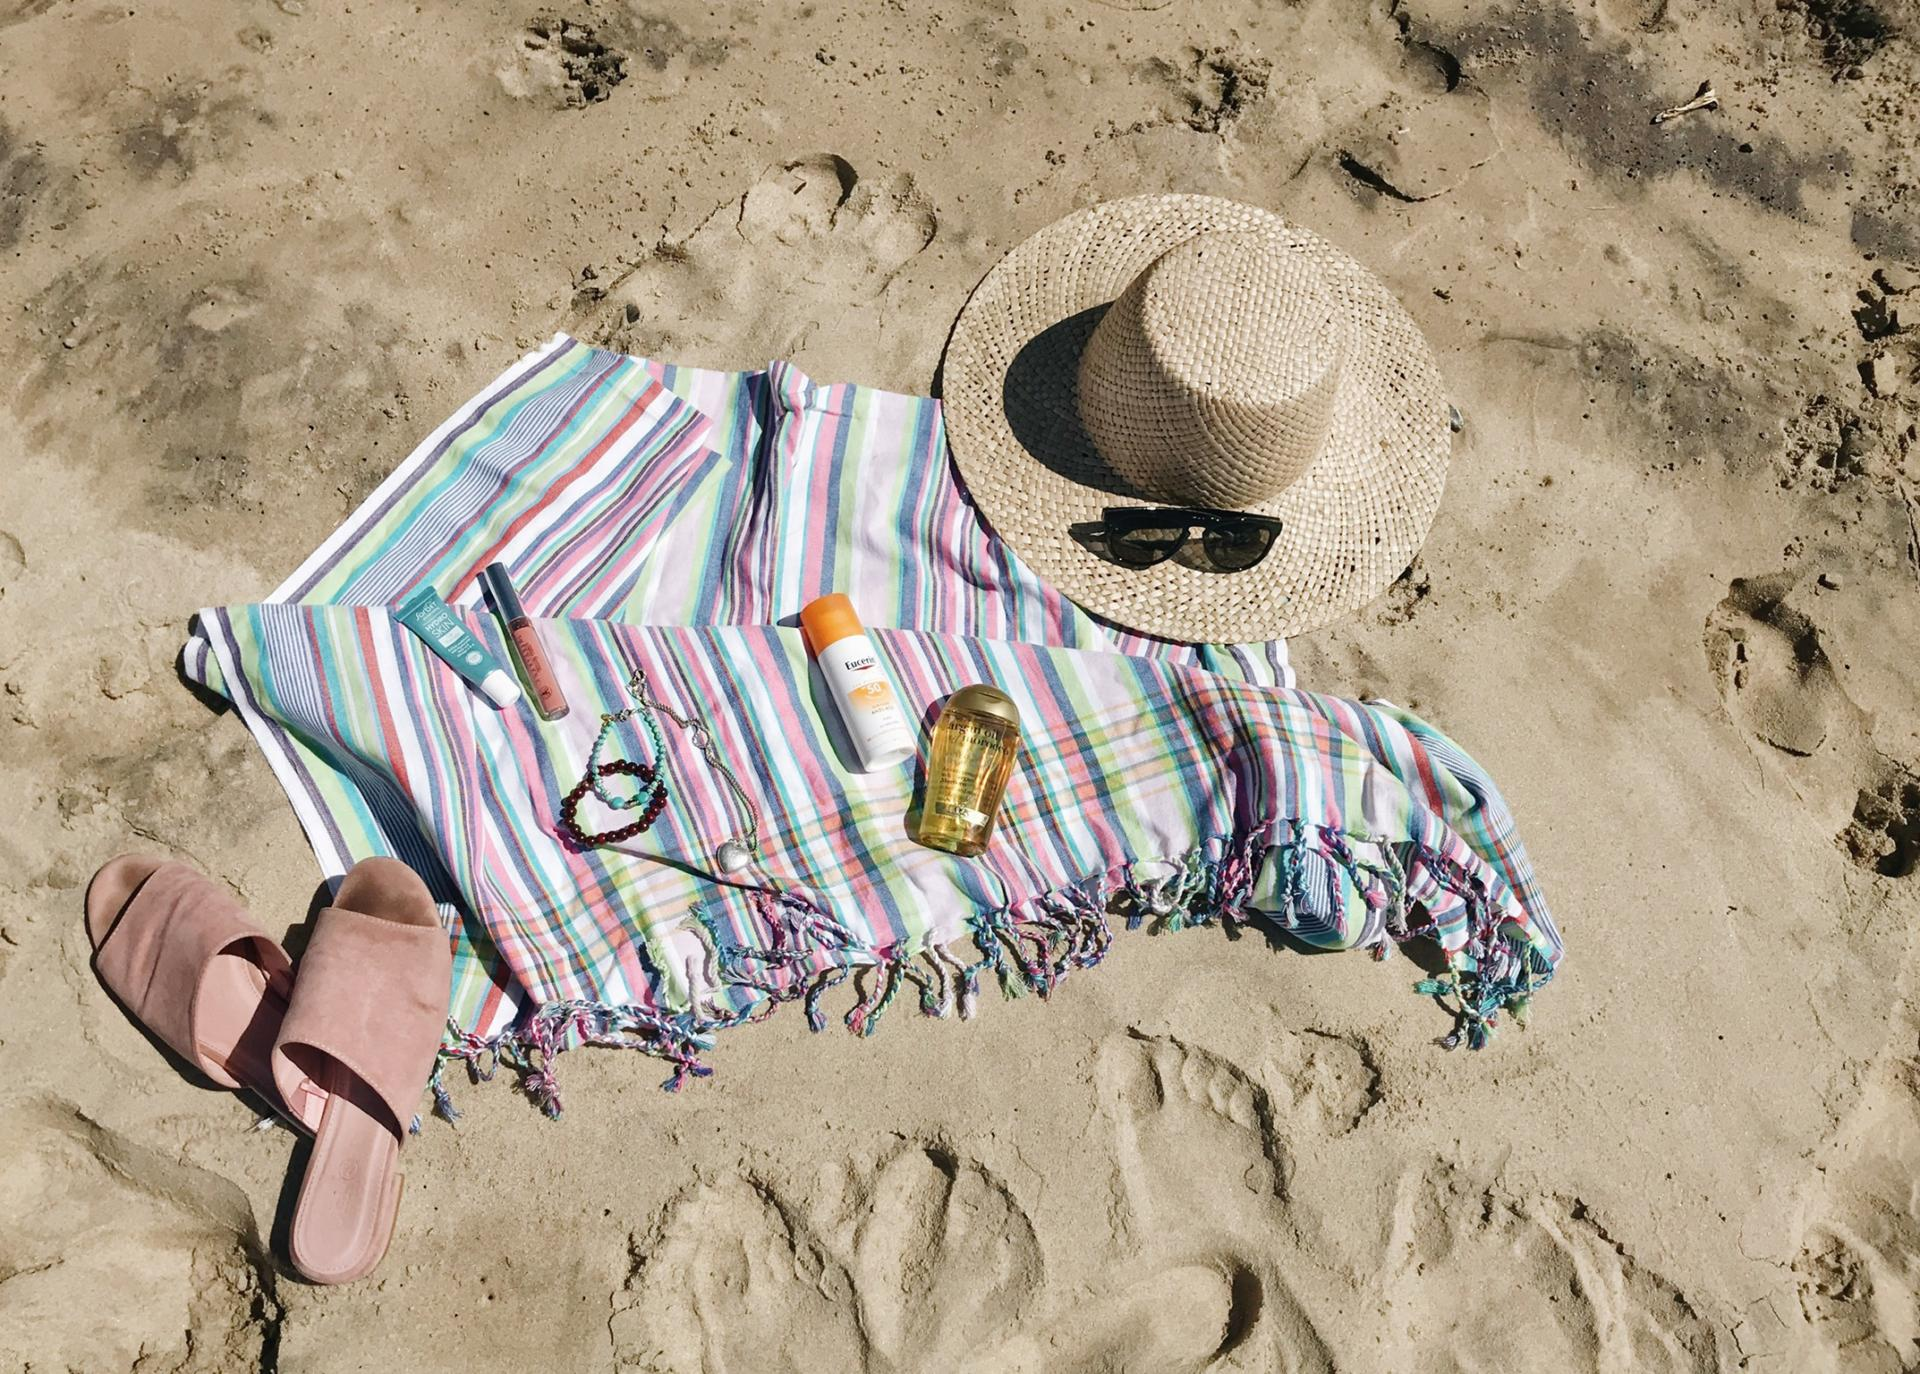 Sarong, shoes, hat and sunglasses laid out on the beach